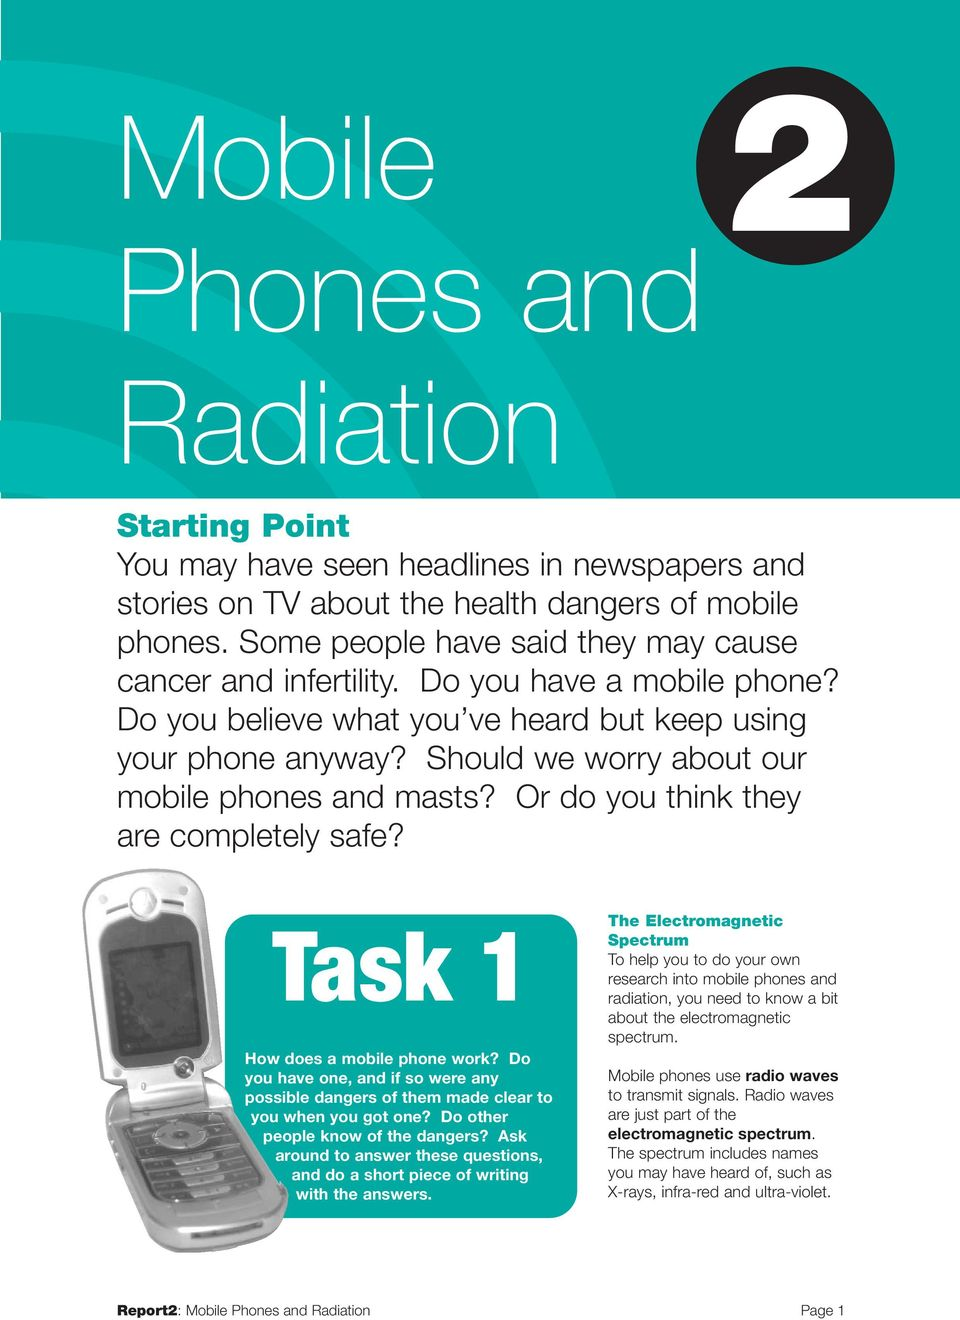 Should we worry about our mobile phones and masts? Or do you think they are completely safe? Task 1 How does a mobile phone work?